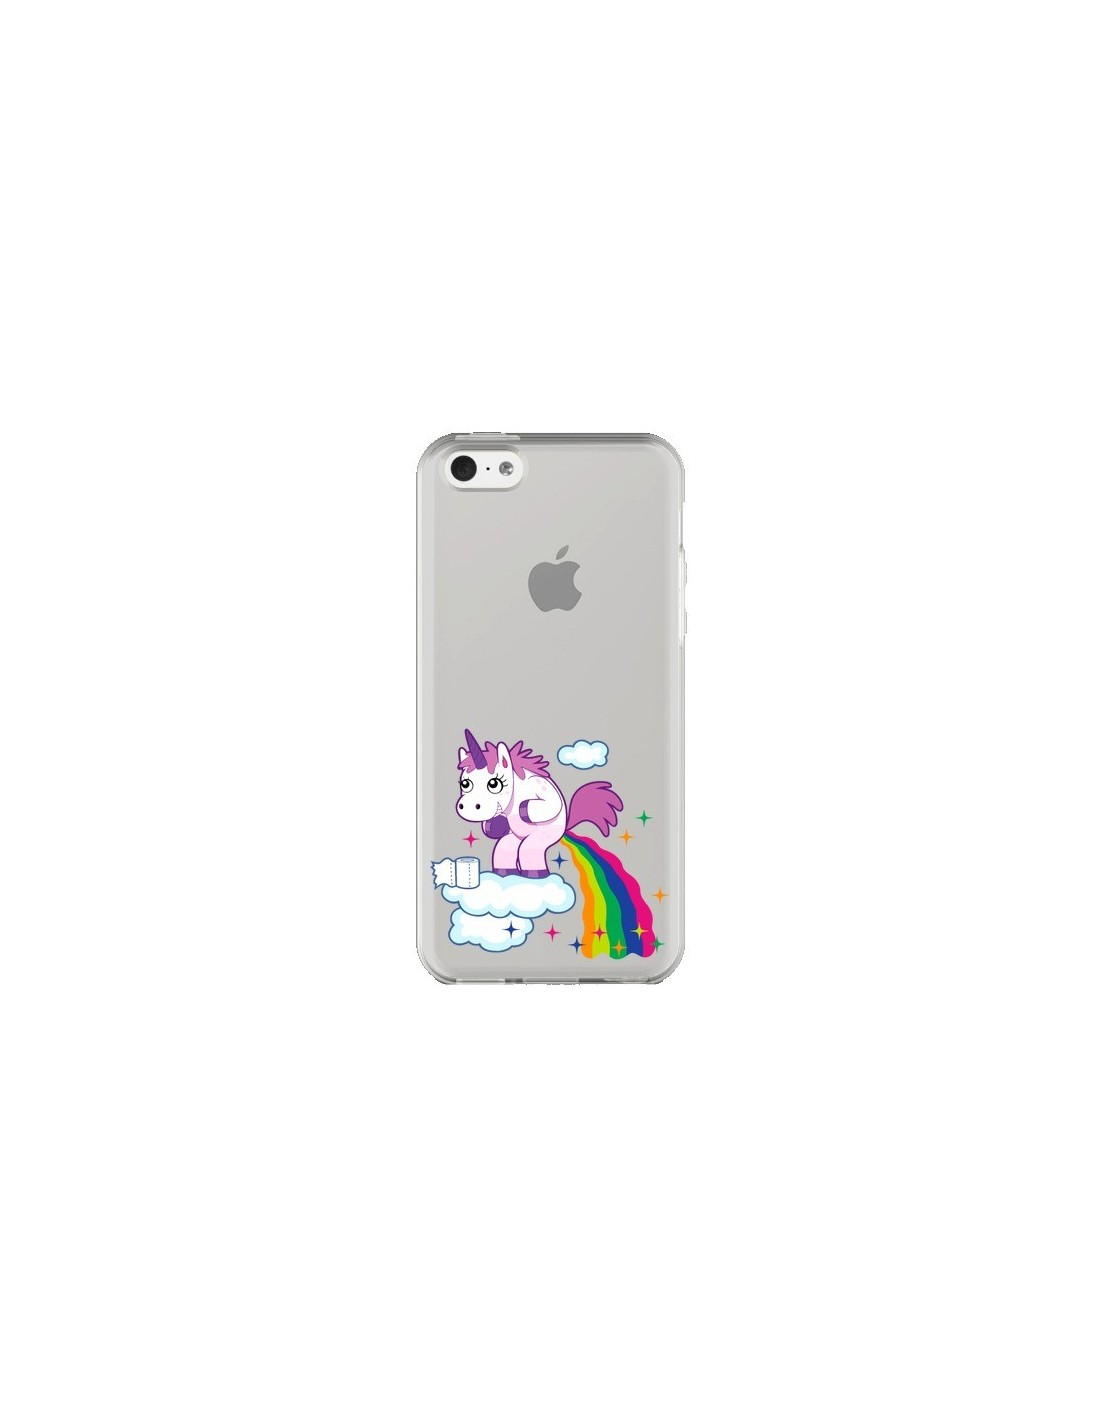 coque licorne caca arc en ciel transparente pour iphone 5c nico. Black Bedroom Furniture Sets. Home Design Ideas